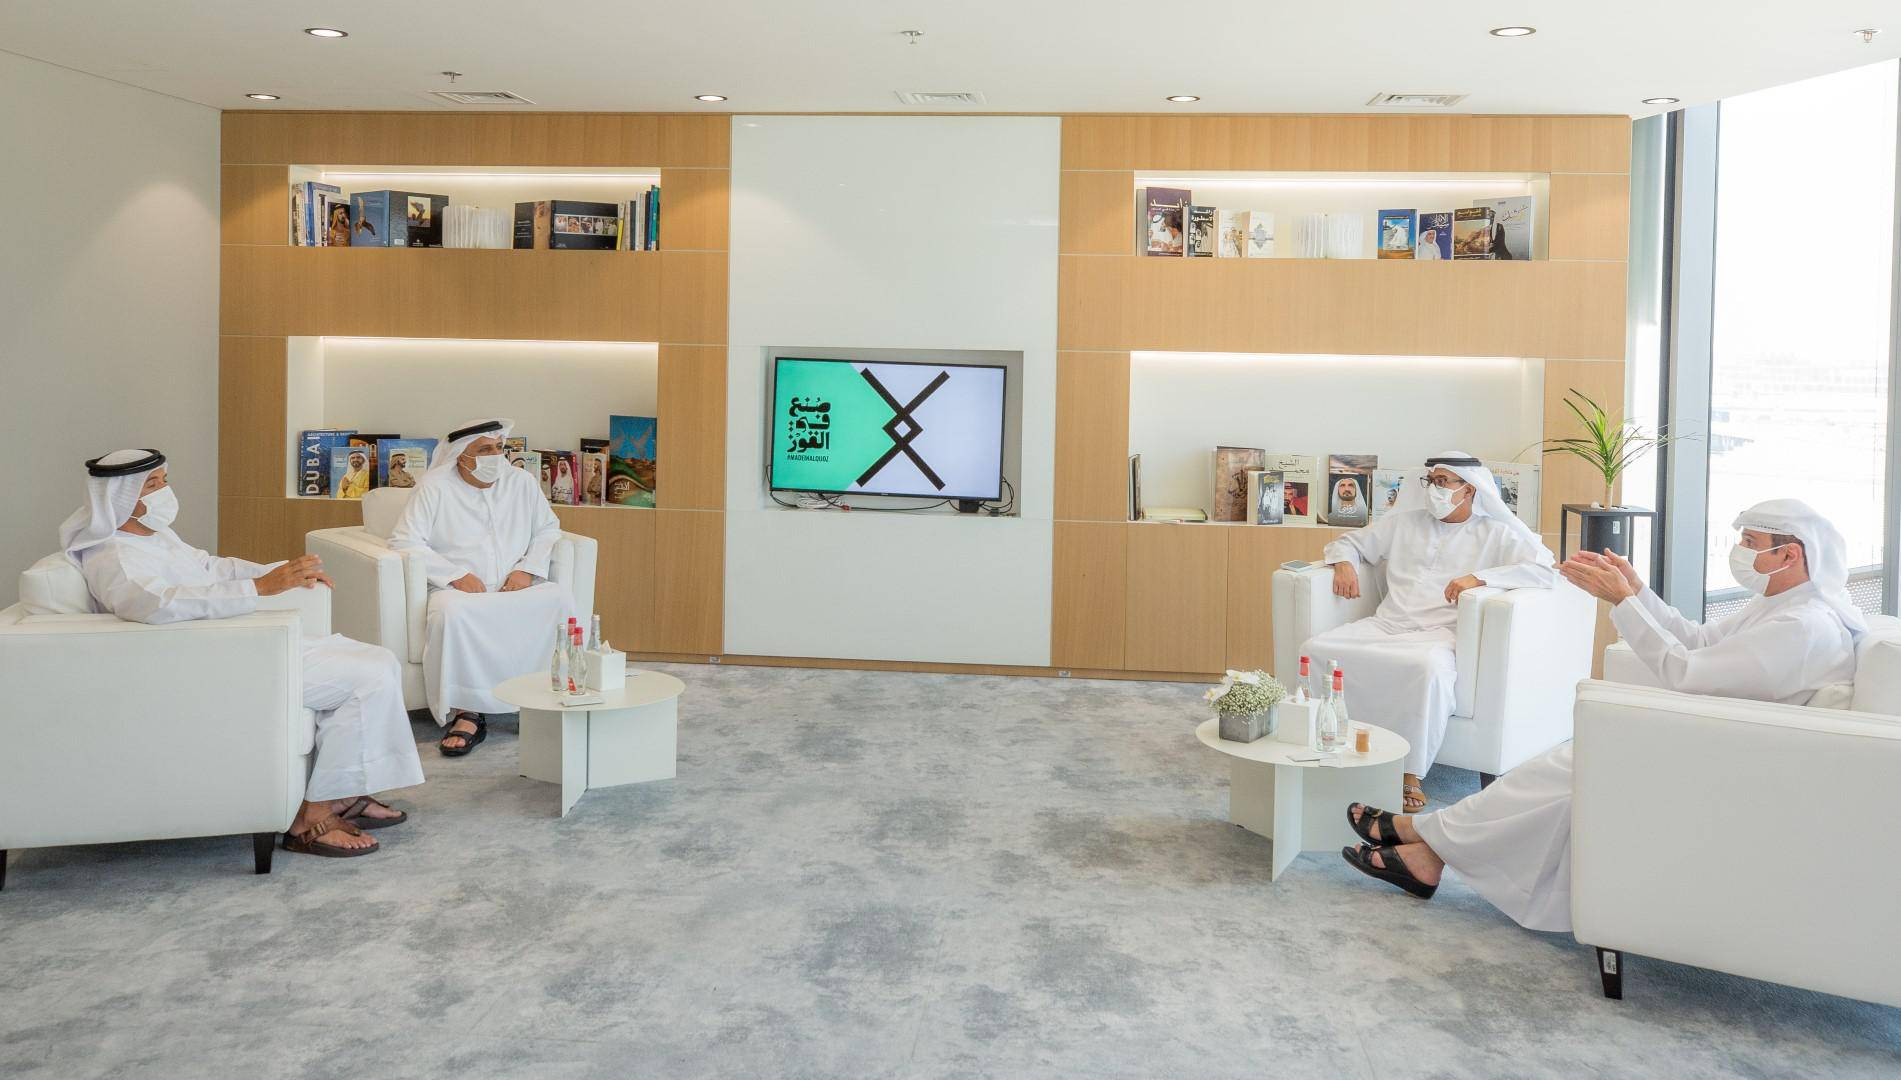 Dubai approves 100-day plan for new creative zone